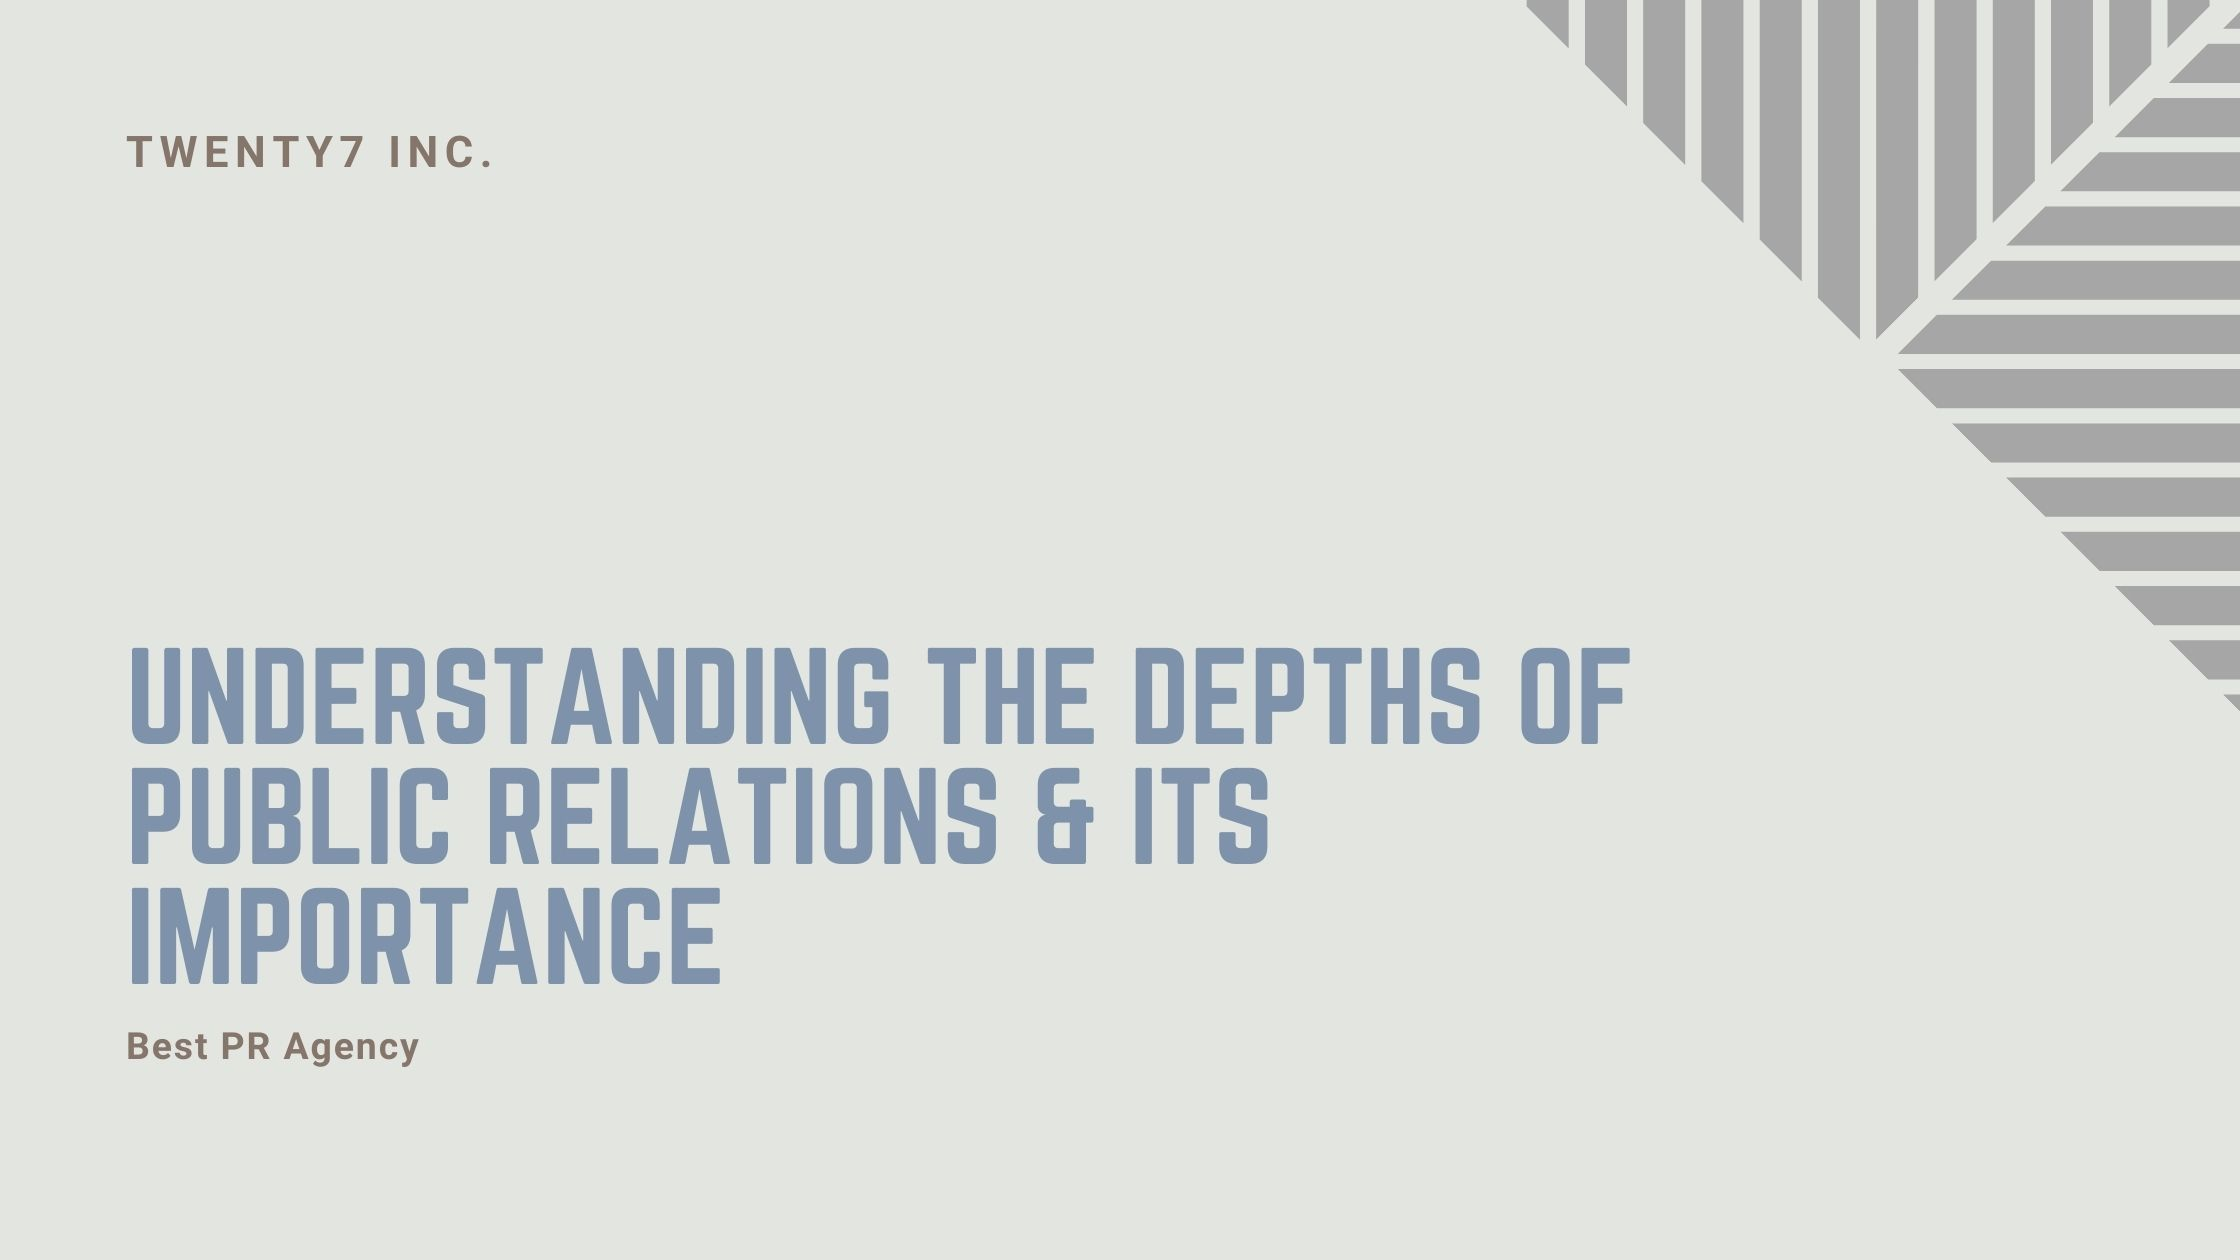 Understanding the Depths of Public Relations & Its Importance